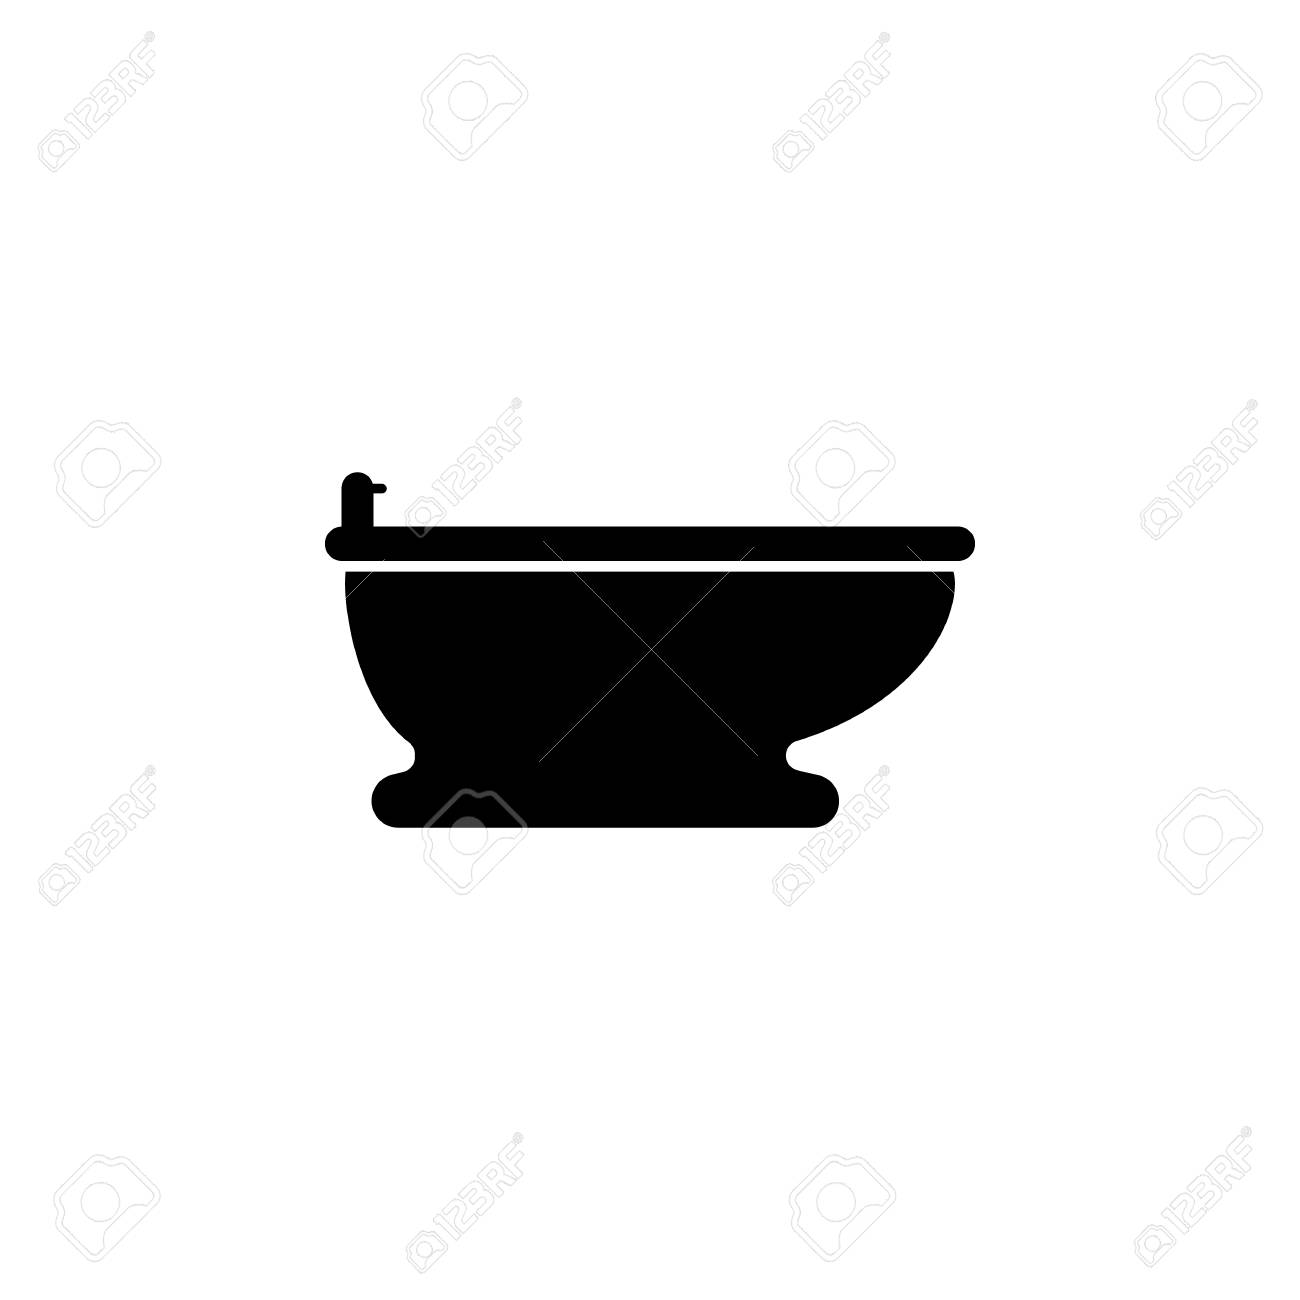 Bidet Icon Bathroom And Sauna Element Icon Premium Quality Royalty Free Cliparts Vectors And Stock Illustration Image 94623696